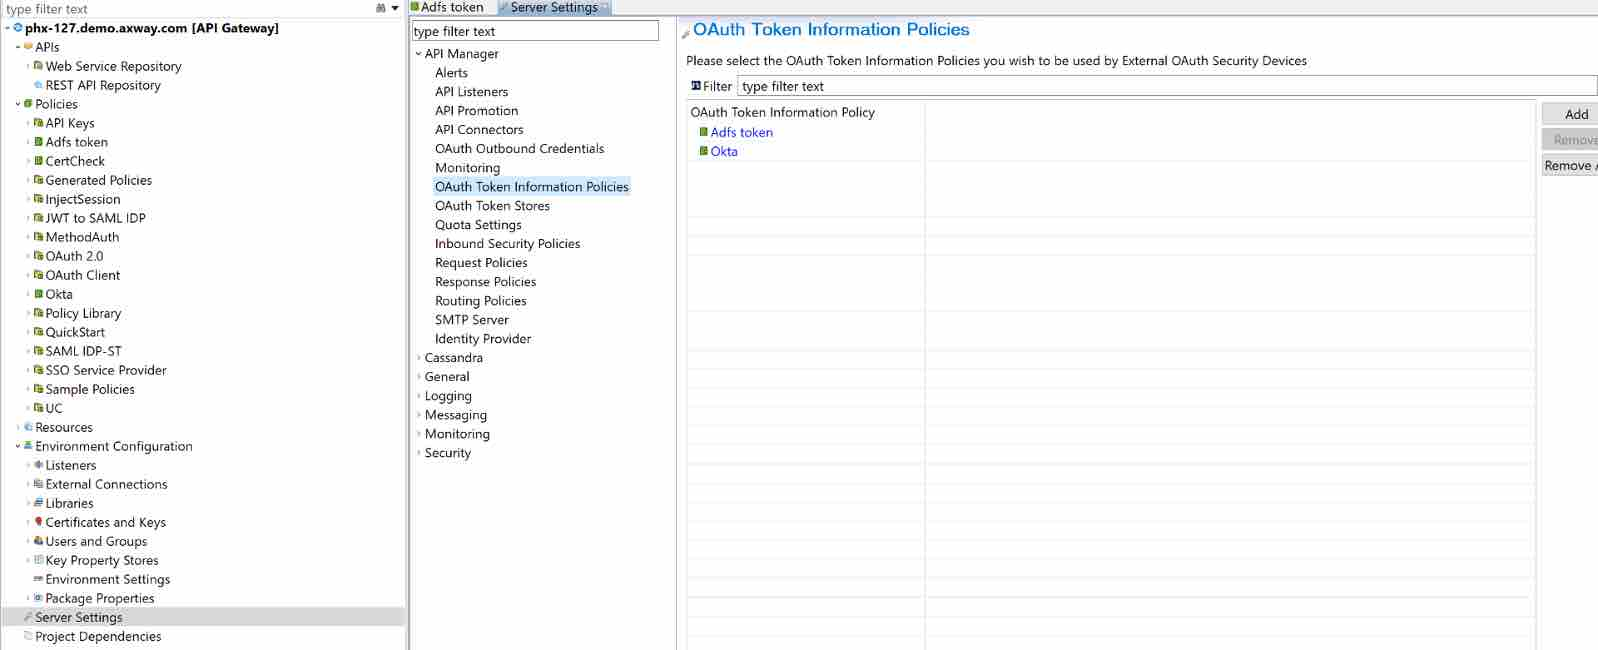 Add the Policy Under the OAuth Token Information Policies